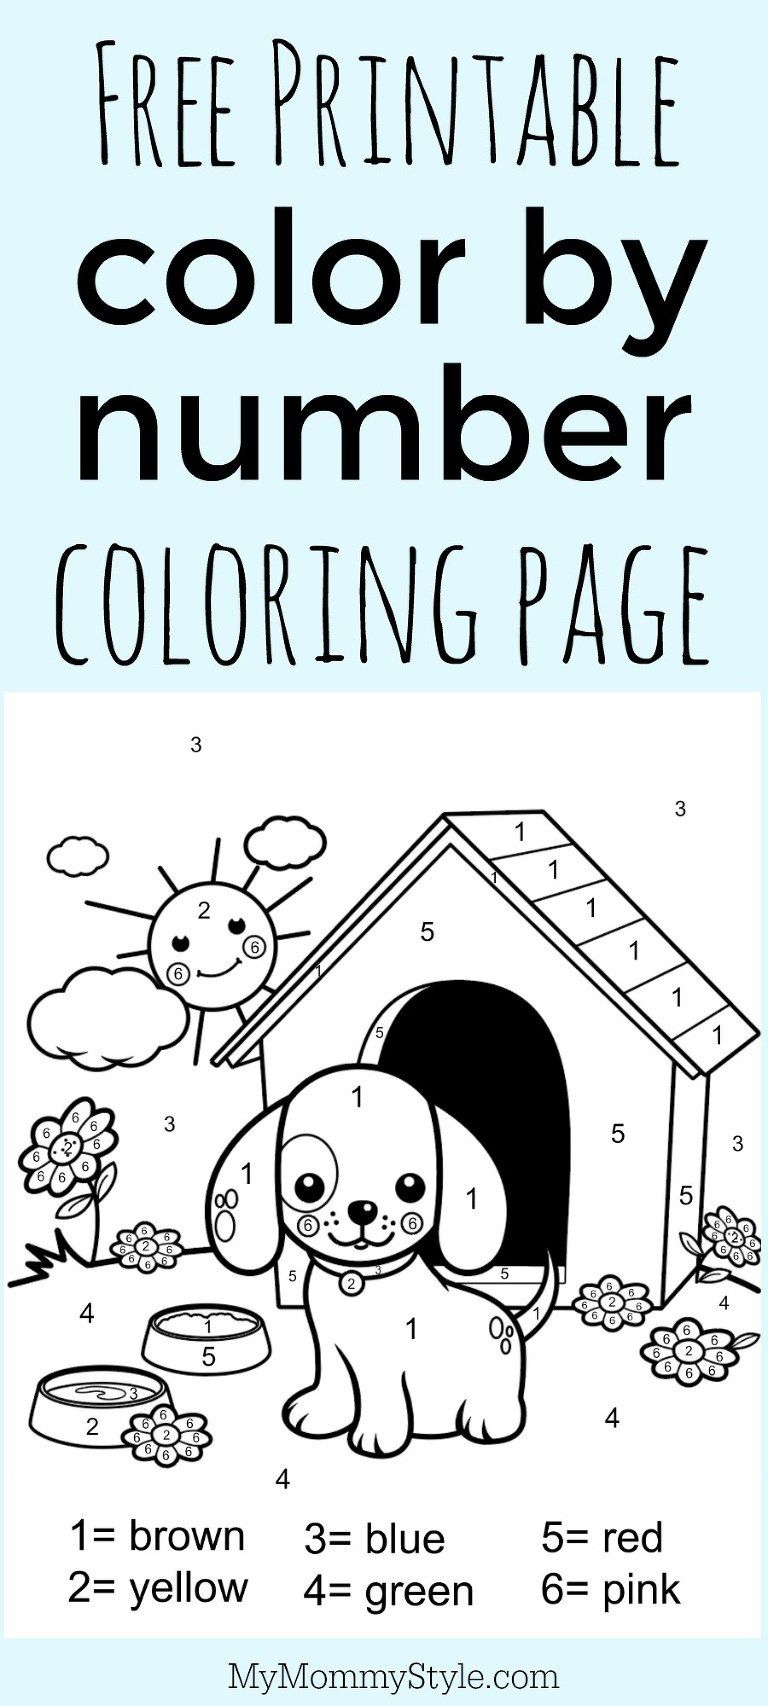 Color By Number Coloring Page Free Printable My Mommy Style Printables Free Kids Kindergarten Colors Preschool Coloring Pages [ 1706 x 768 Pixel ]